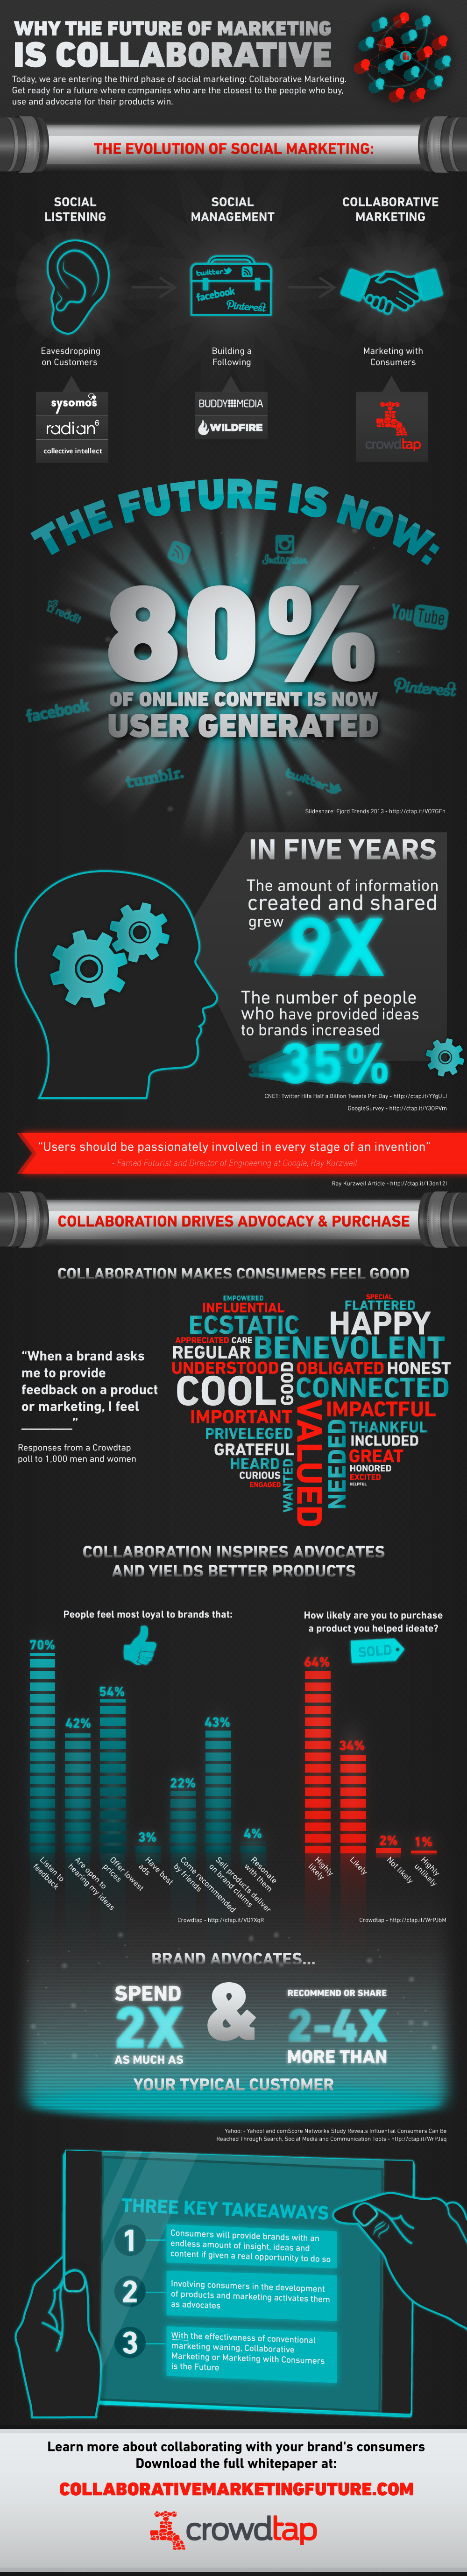 The Age of Collaborative Marketing Has Arrived